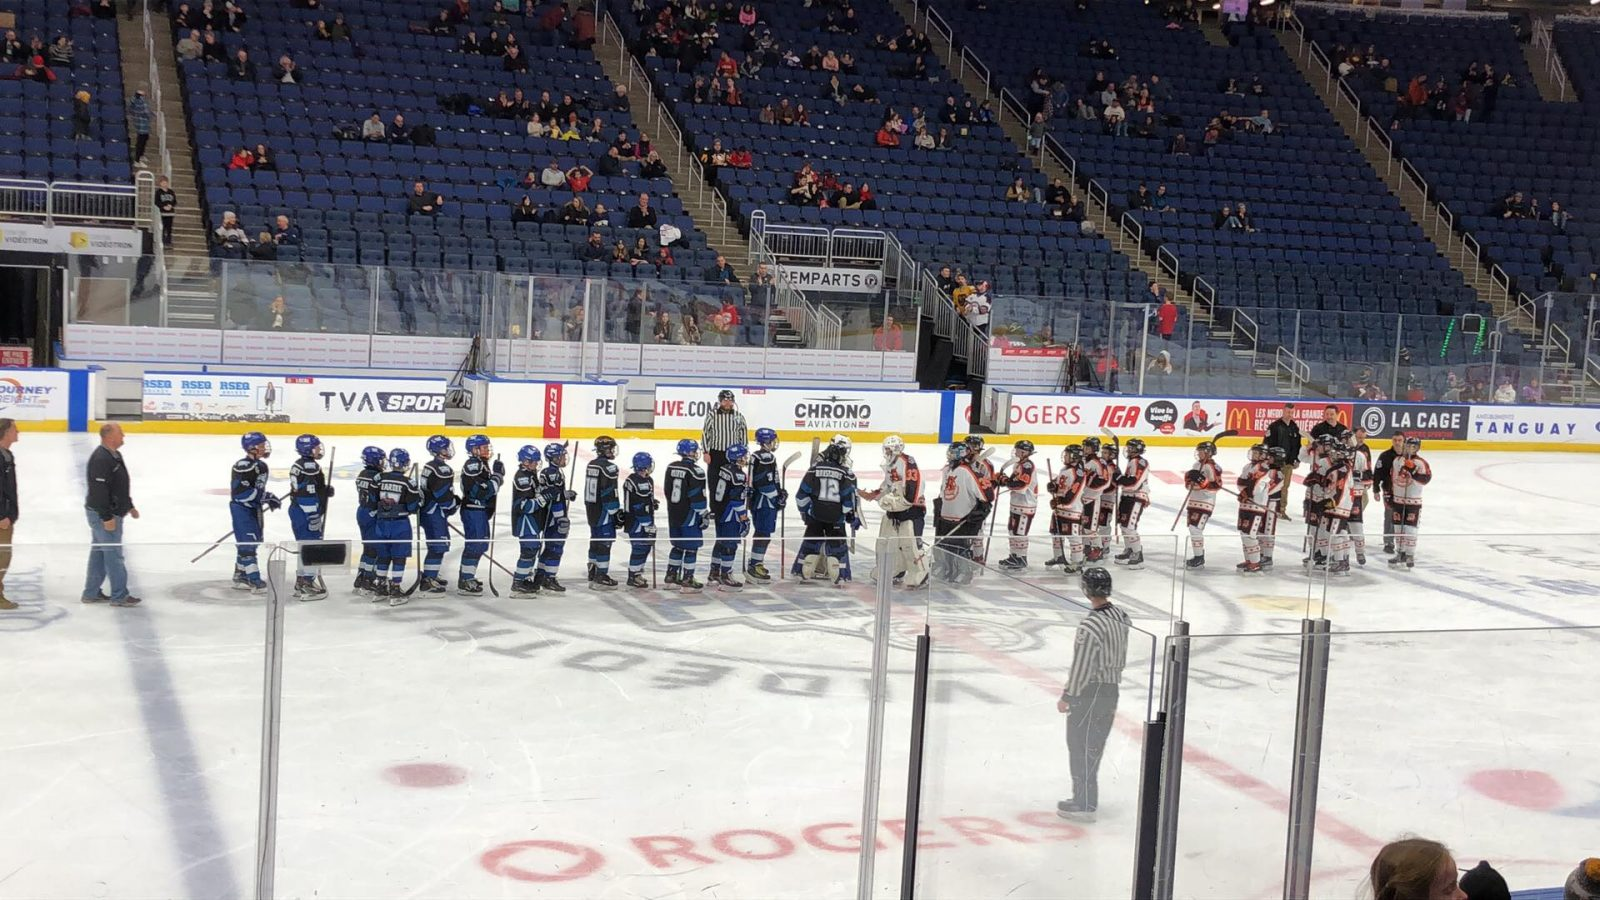 Tournoi international de hockey pee-wee de Québec : les Basques s'inclinent contre les Bulls de Tampa